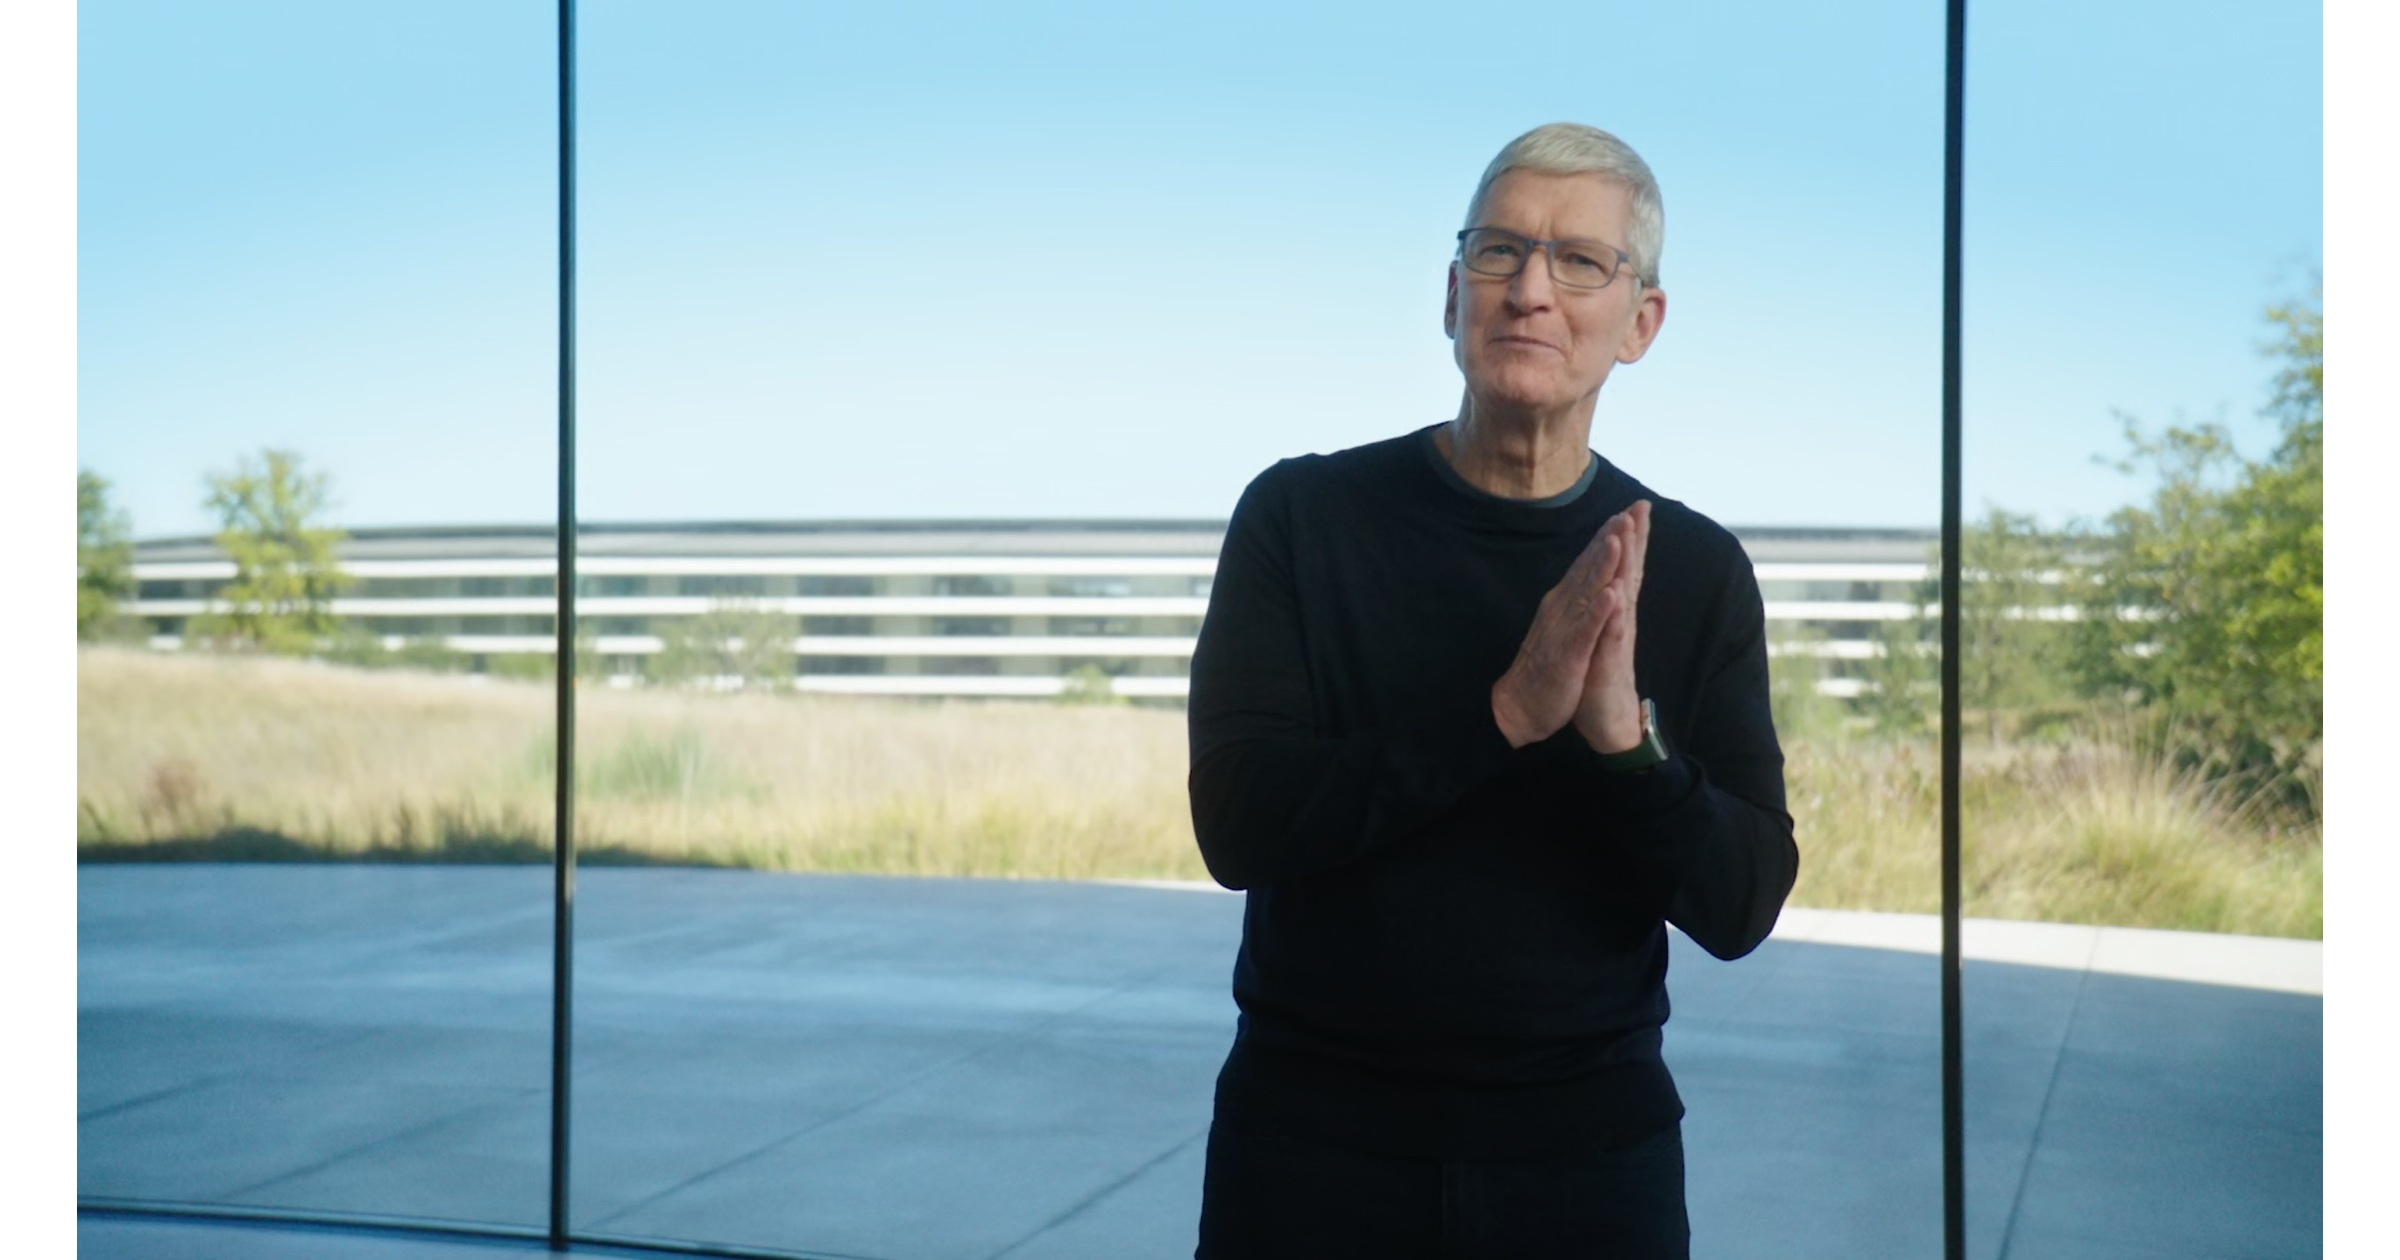 Apple event and product release dates